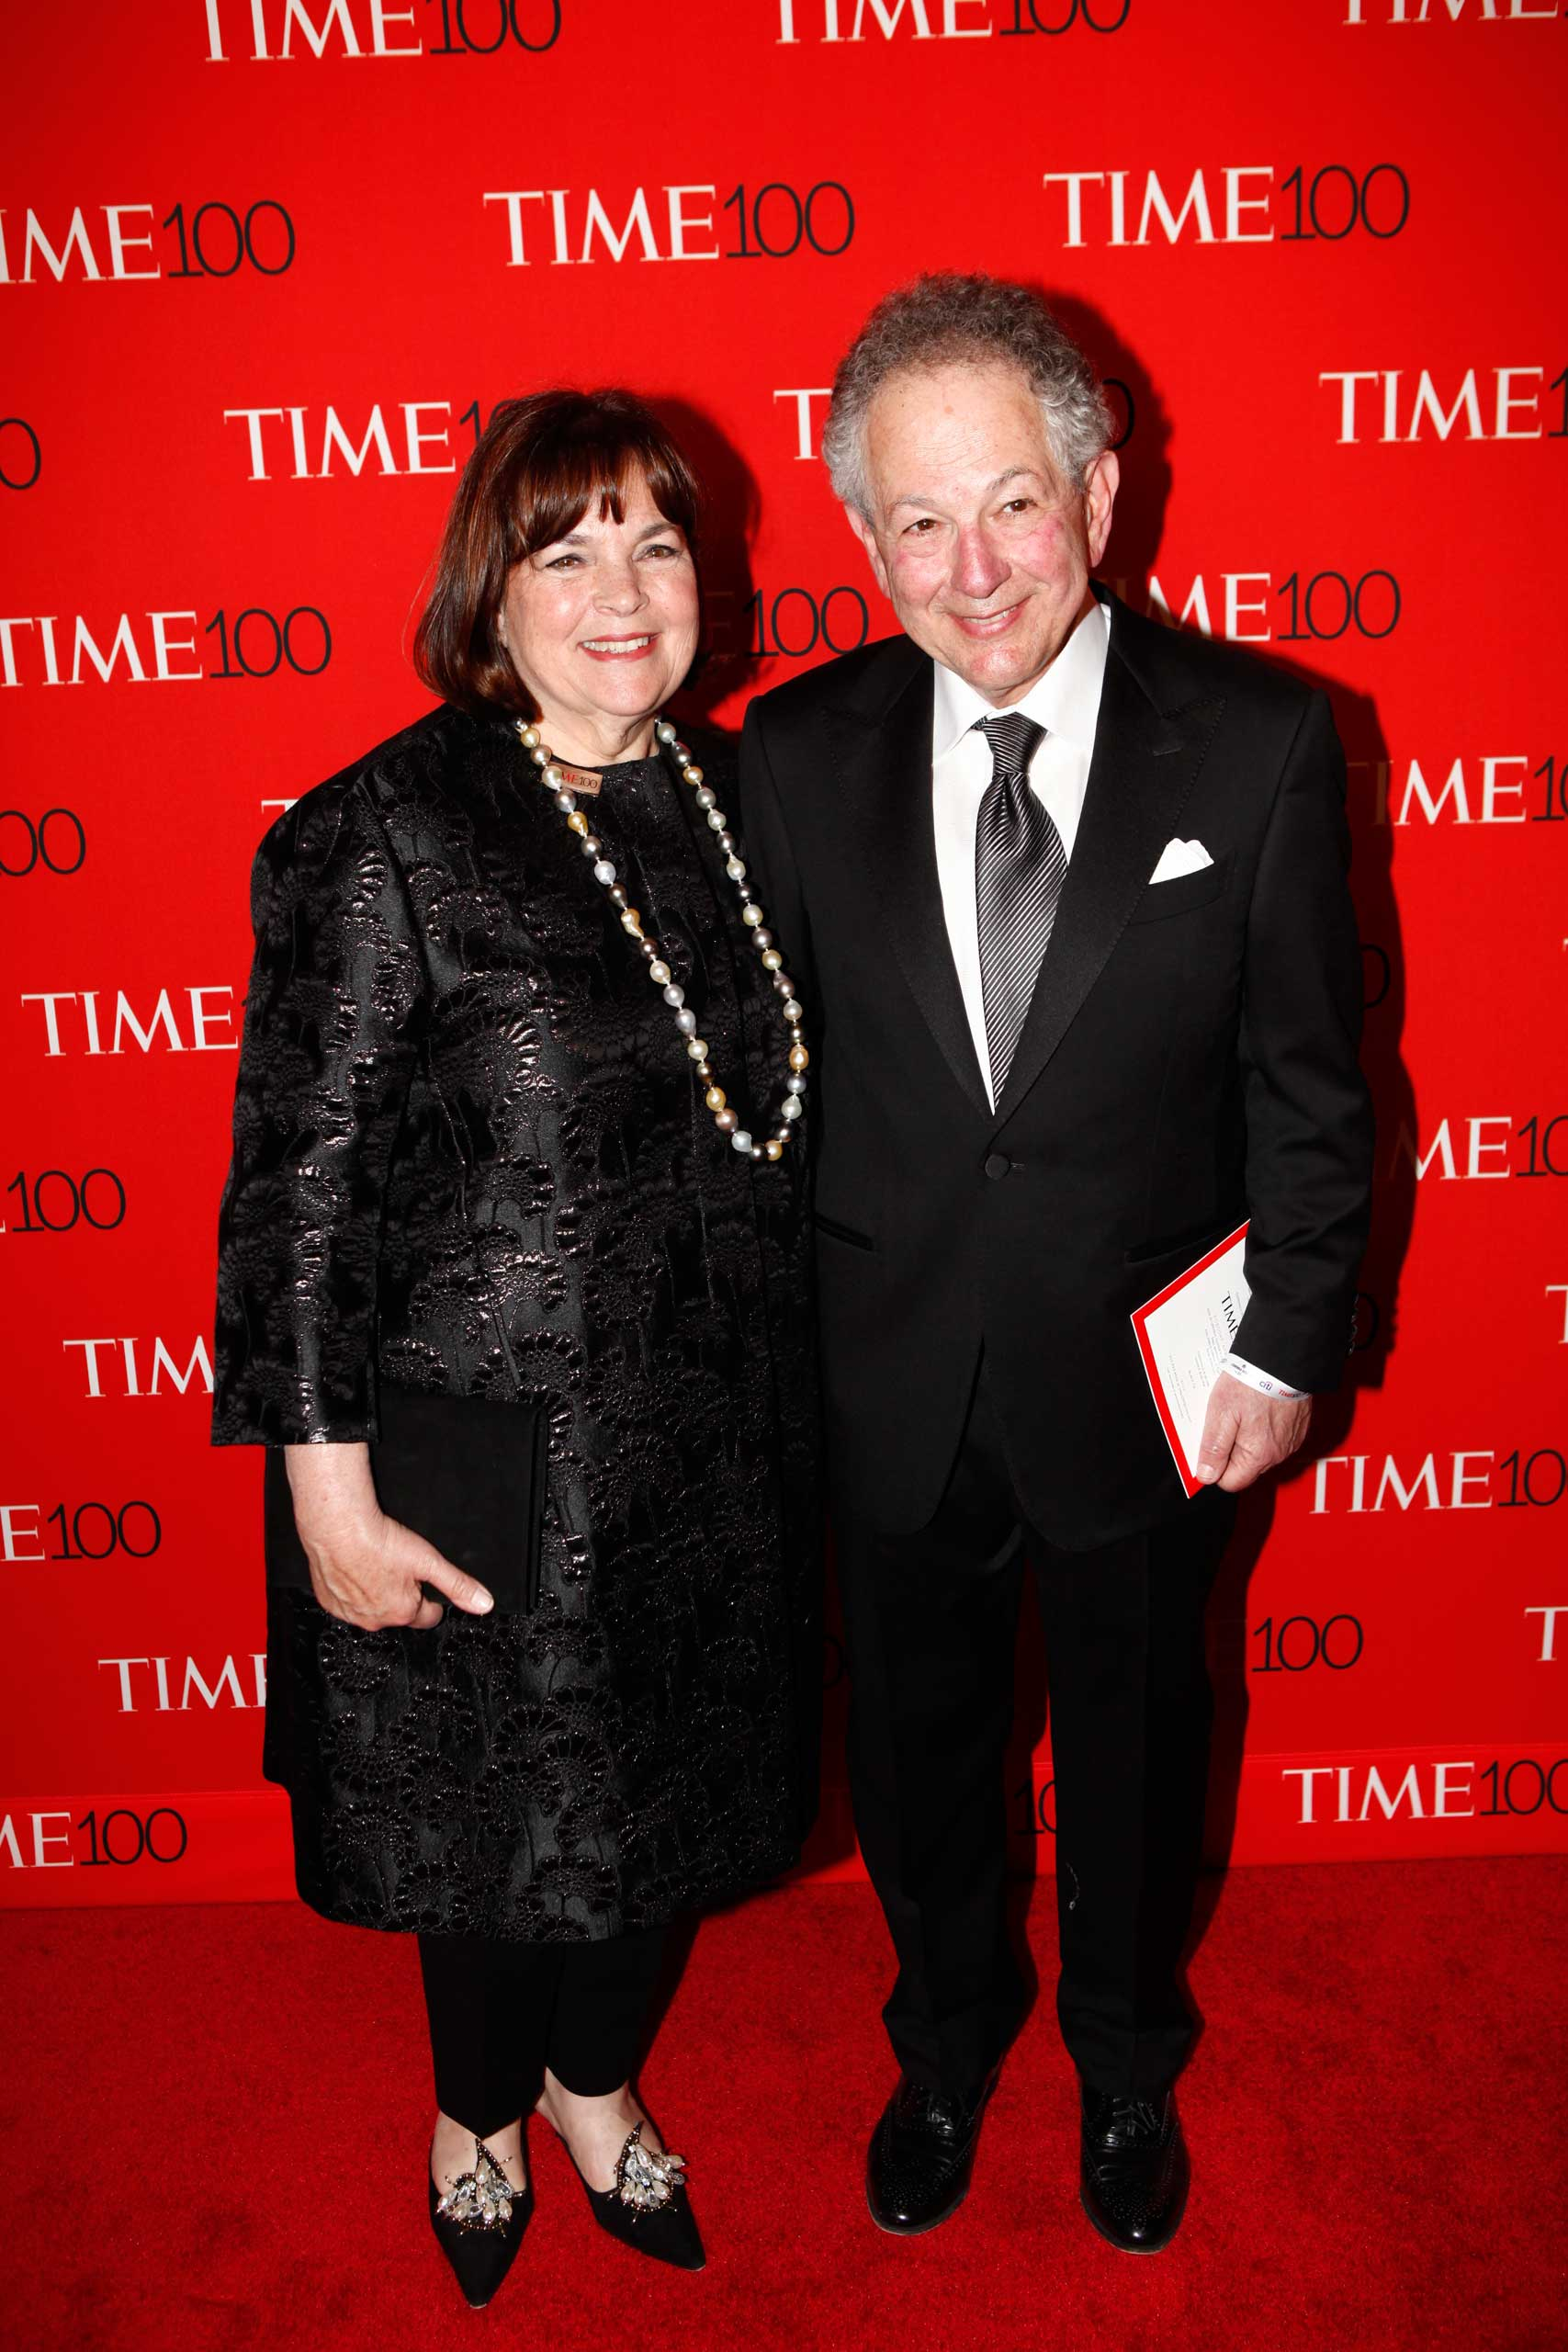 Ina Garten and Jeffrey Garten attend the TIME 100 Gala at Jazz at Lincoln Center in New York City on Apr. 21, 2015.